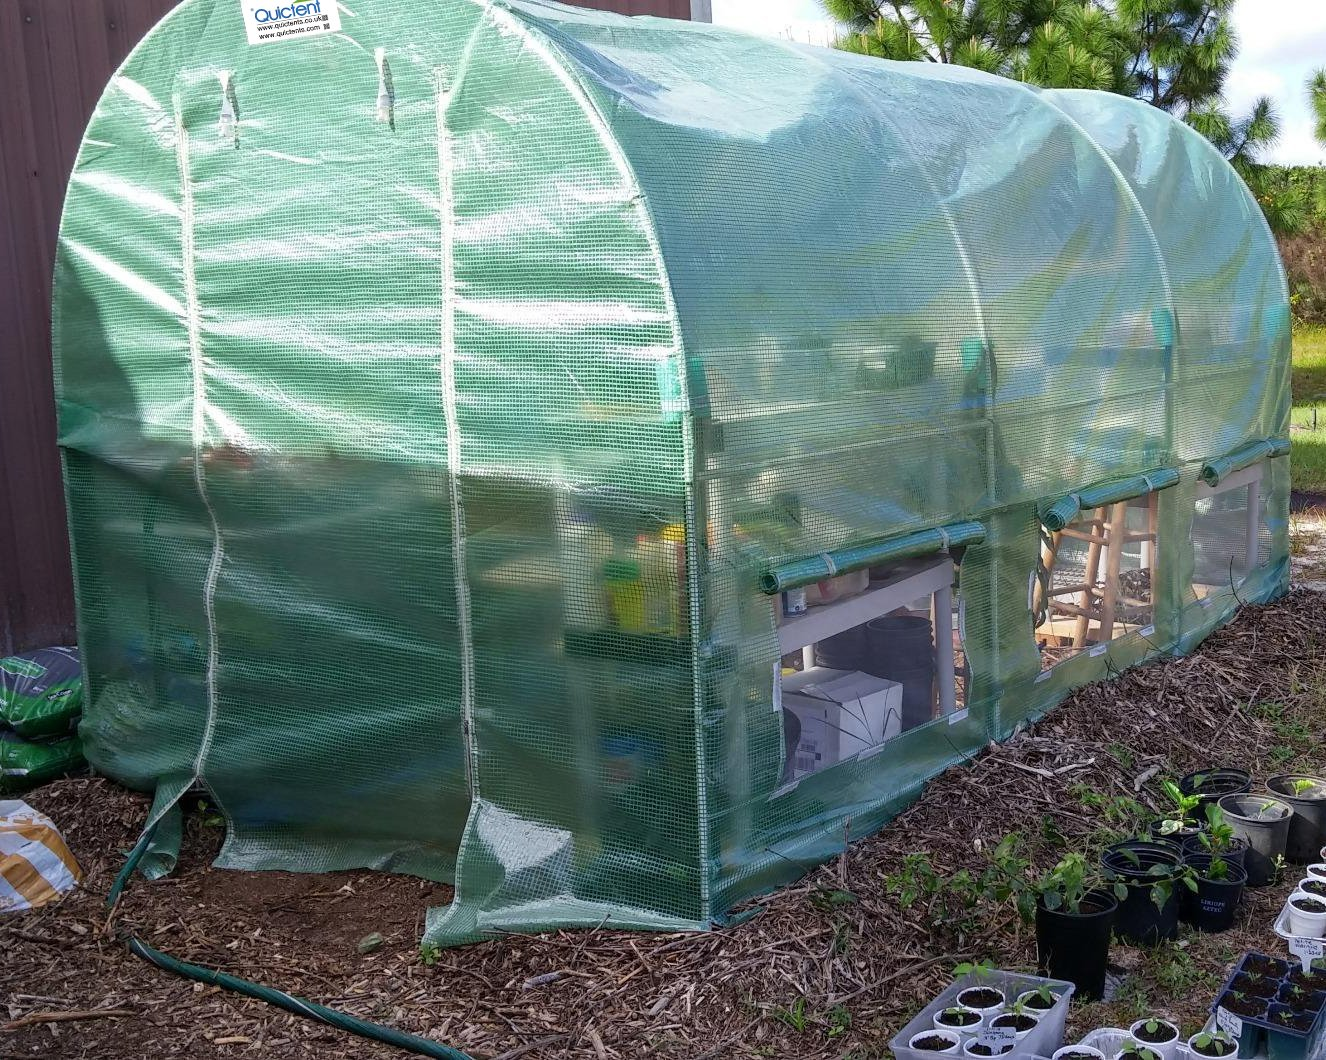 Quictent 2 Doors Reinforced PE Cover 12' X 7' X 7' Portable Greenhouse Large Walk-in Green Garden Hot House by Quictent